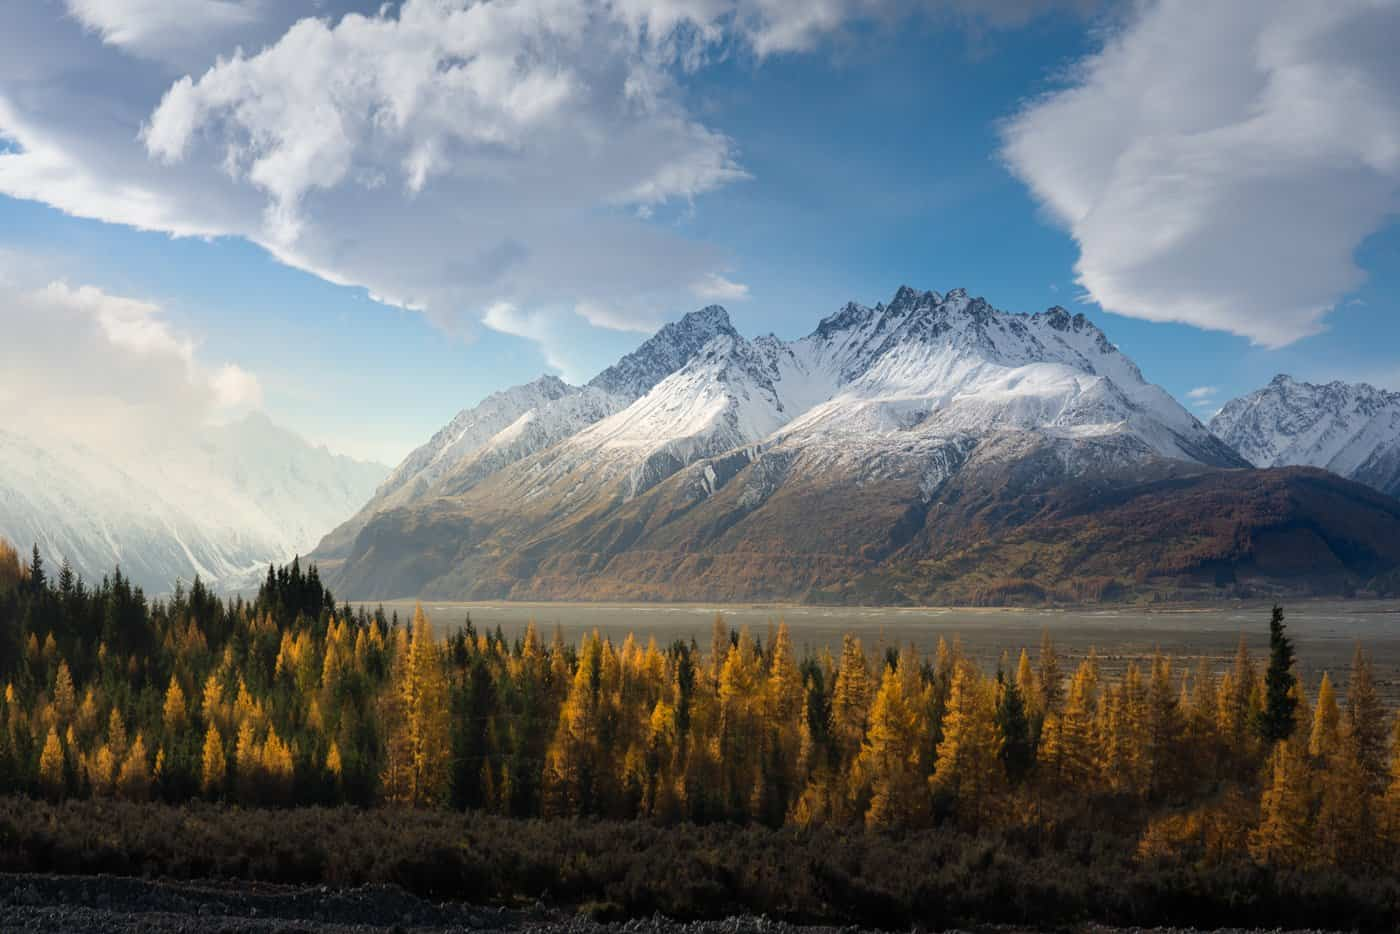 April in New Zealand is an amazing time to capture that beautiful autumn color at Mt Cook.